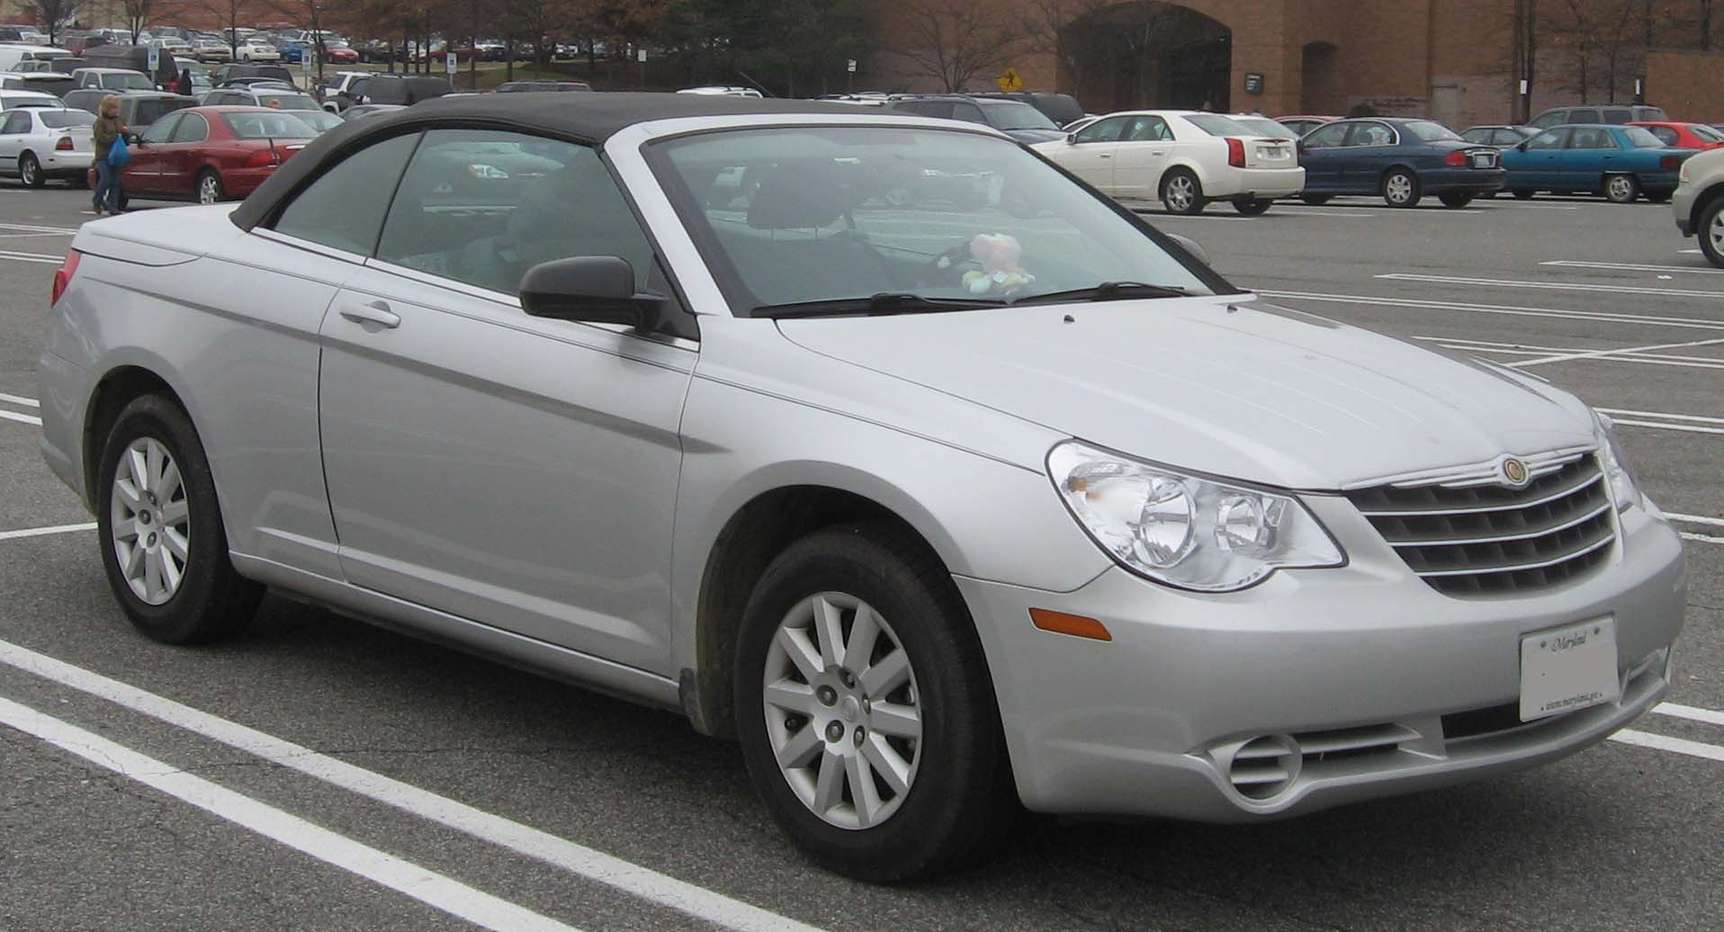 Chrysler Sebring Convertible #8748158